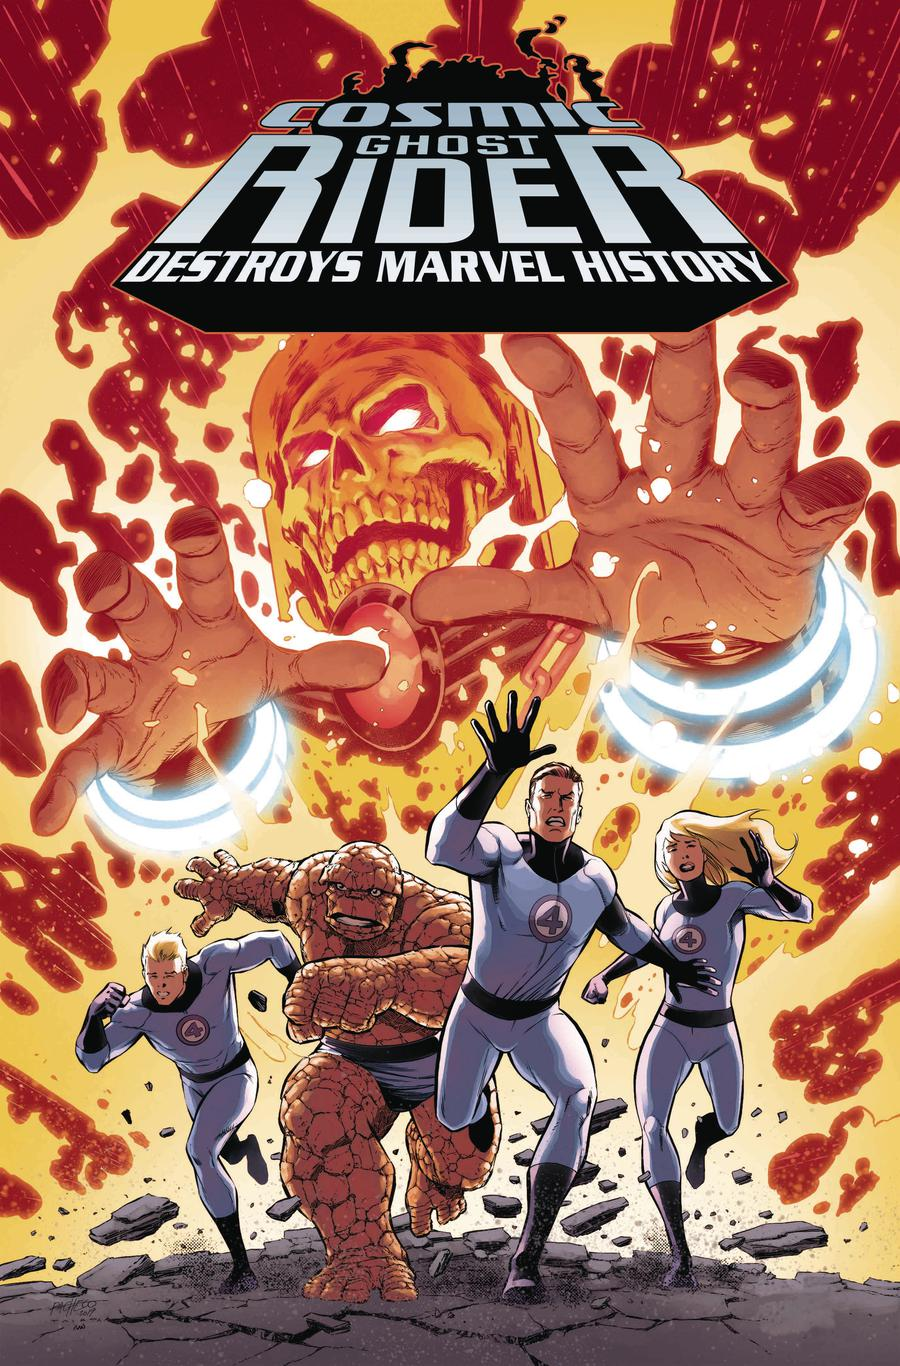 Cosmic Ghost Rider Destroys Marvel History #1 Cover C Incentive Carlos Pacheco Variant Cover